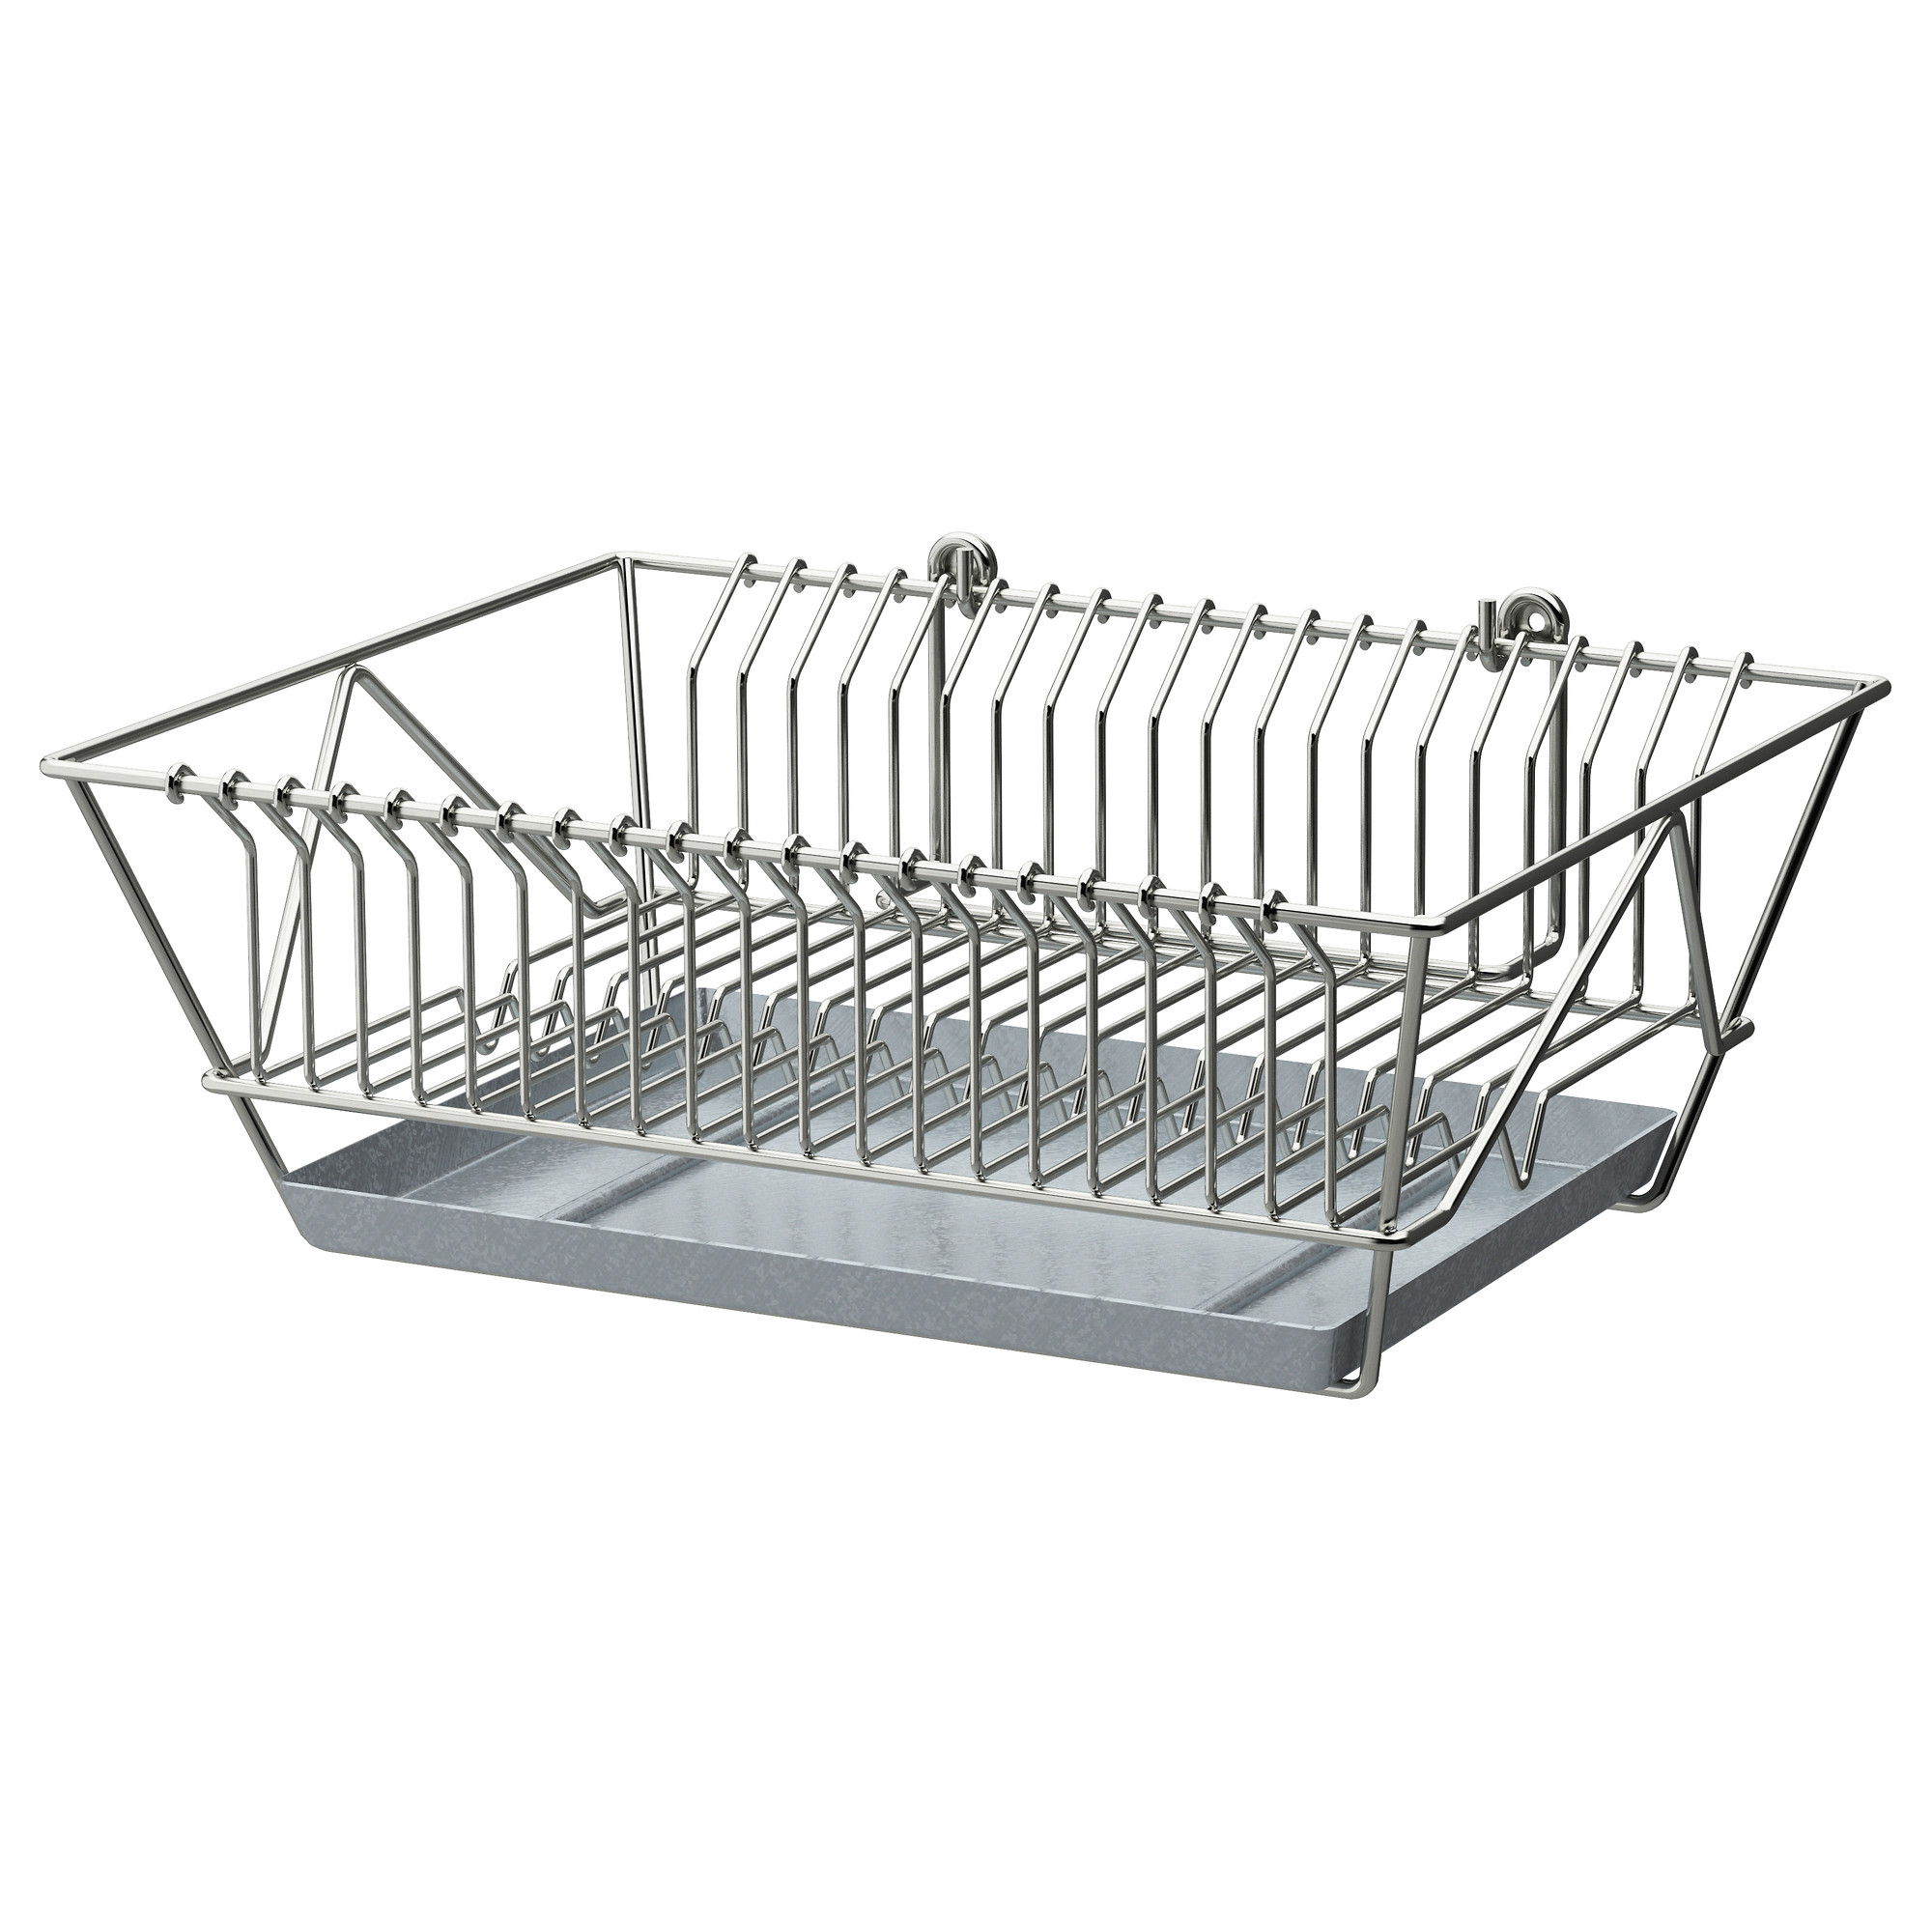 Stainless Steel Rack For Dish Drying  sc 1 st  HomesFeed & Ikea Dish Drying Rack | HomesFeed